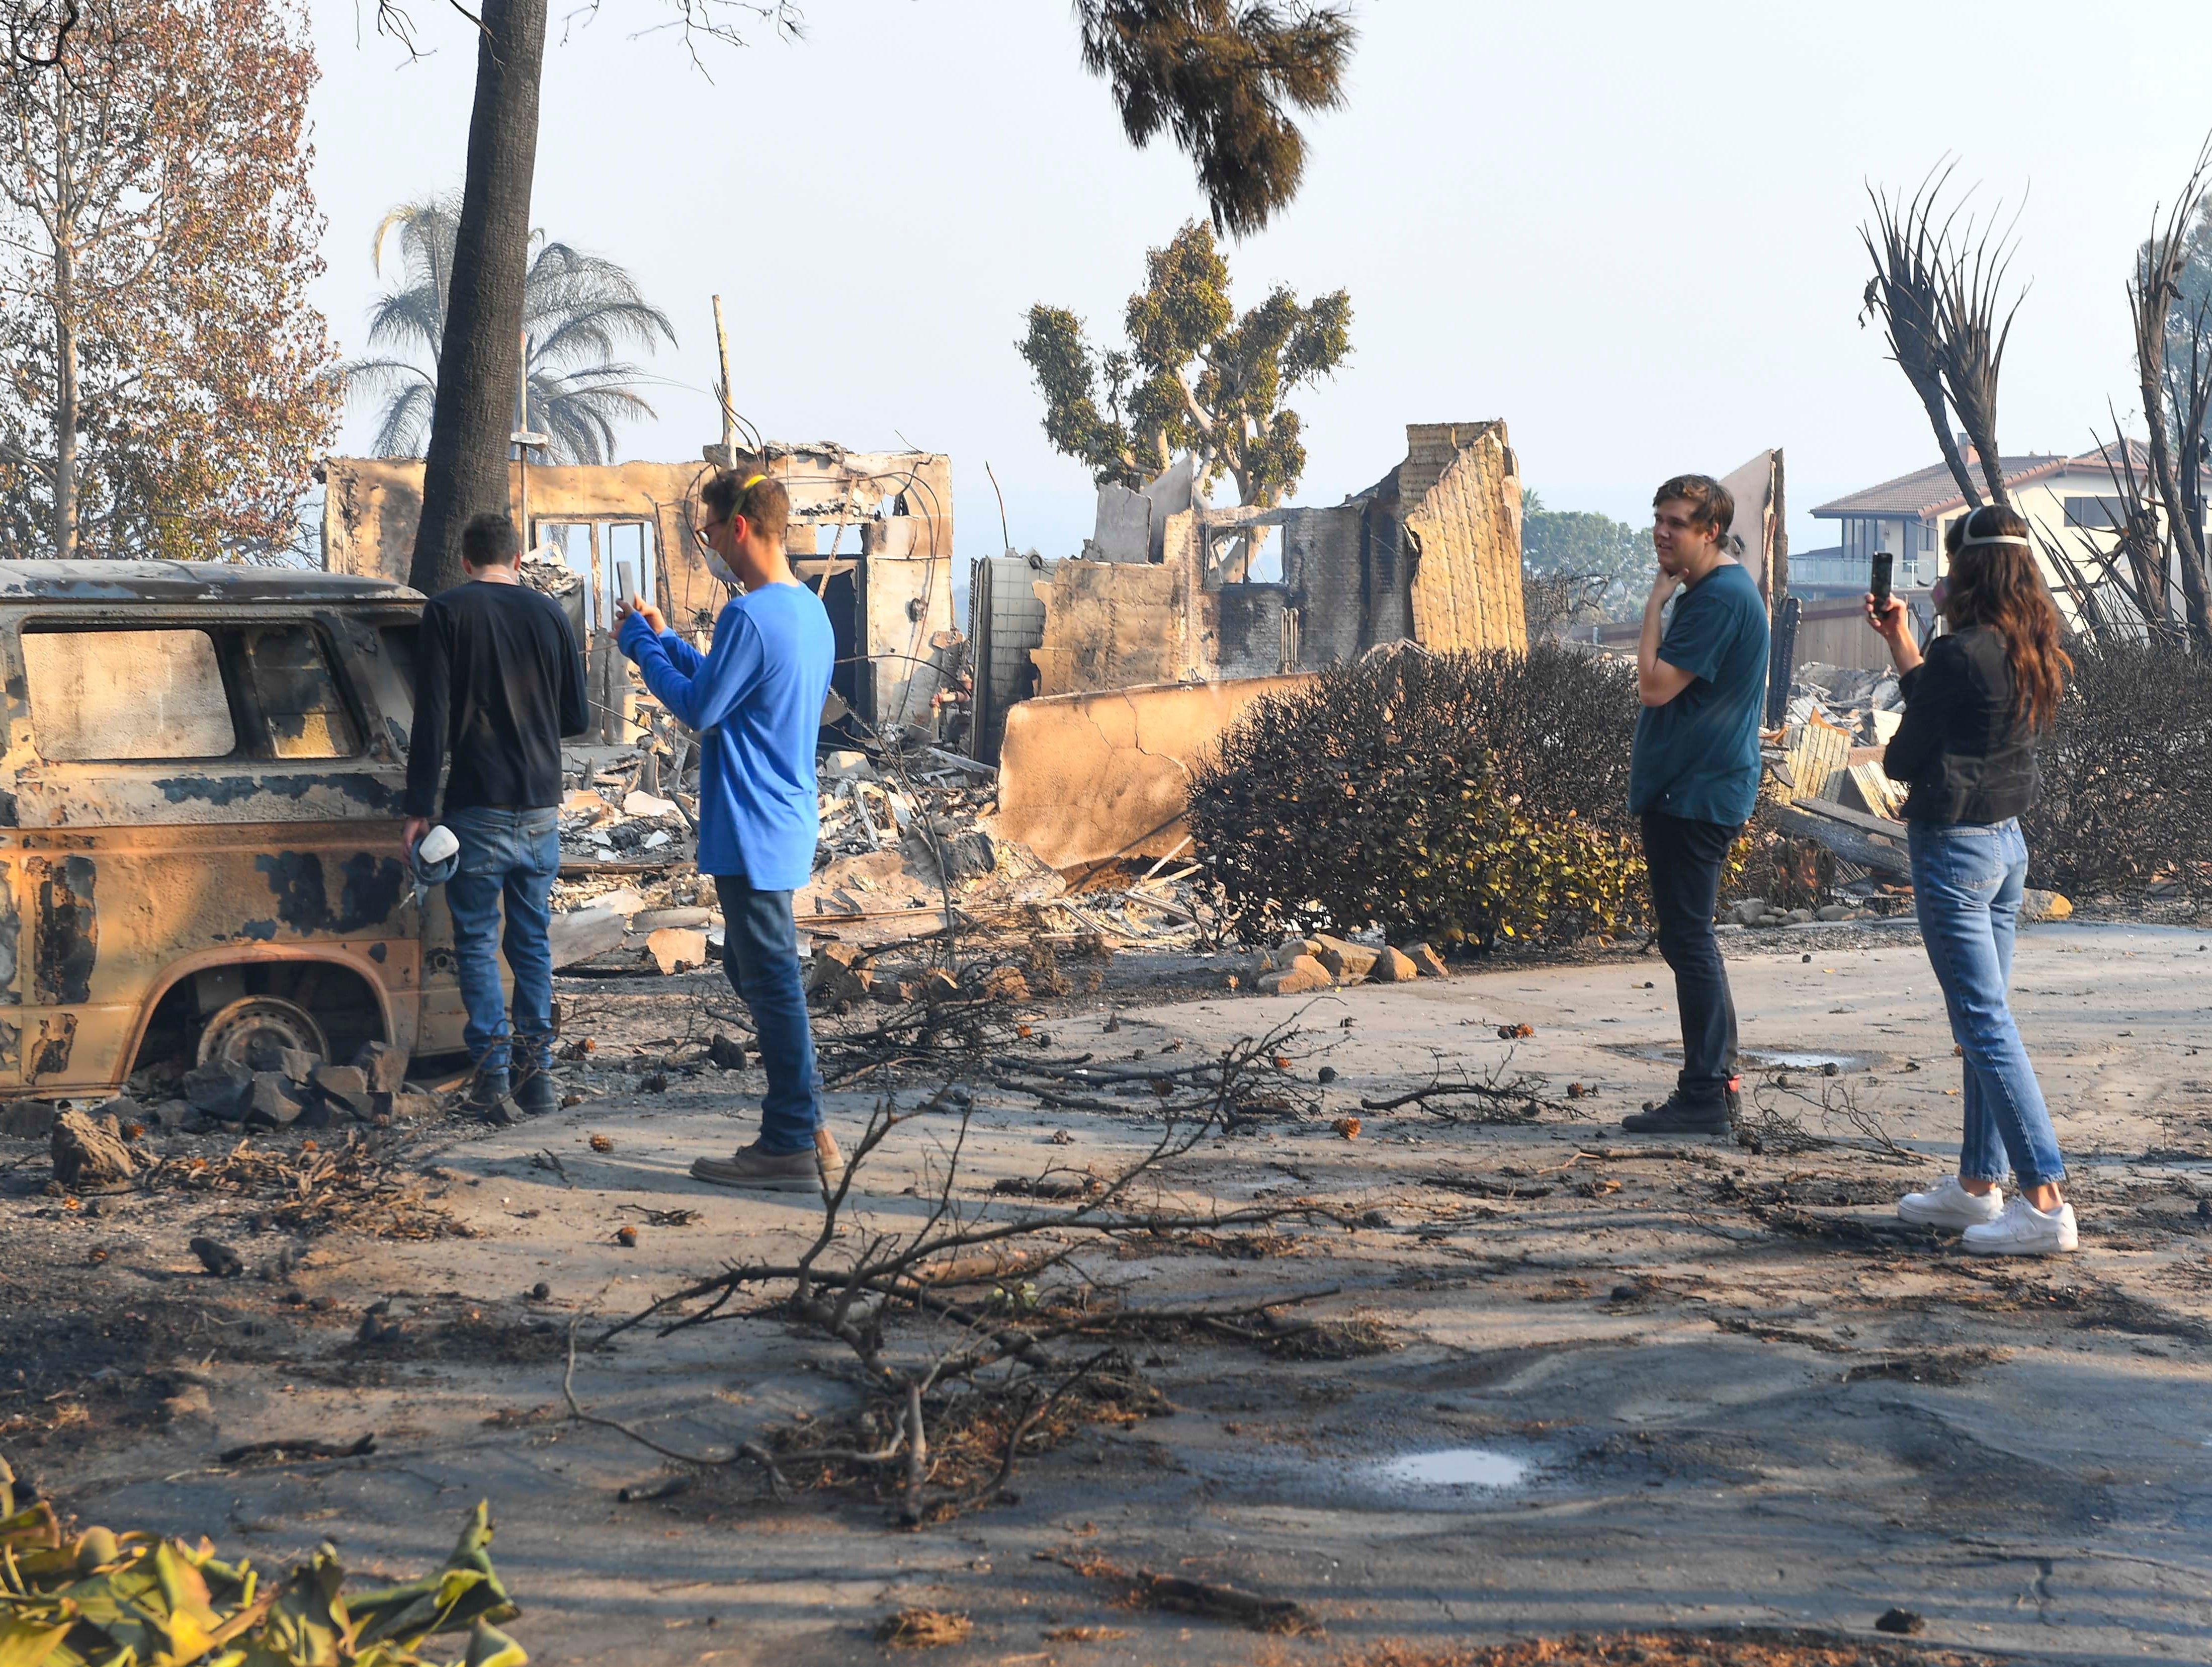 Residents look over the damage to a home on Dume Road in Malibu, Calif, which was overrun by the Woosley Fire. The Woosley Fire as of Nov.10, 2018 has consumed 70,000 acres.